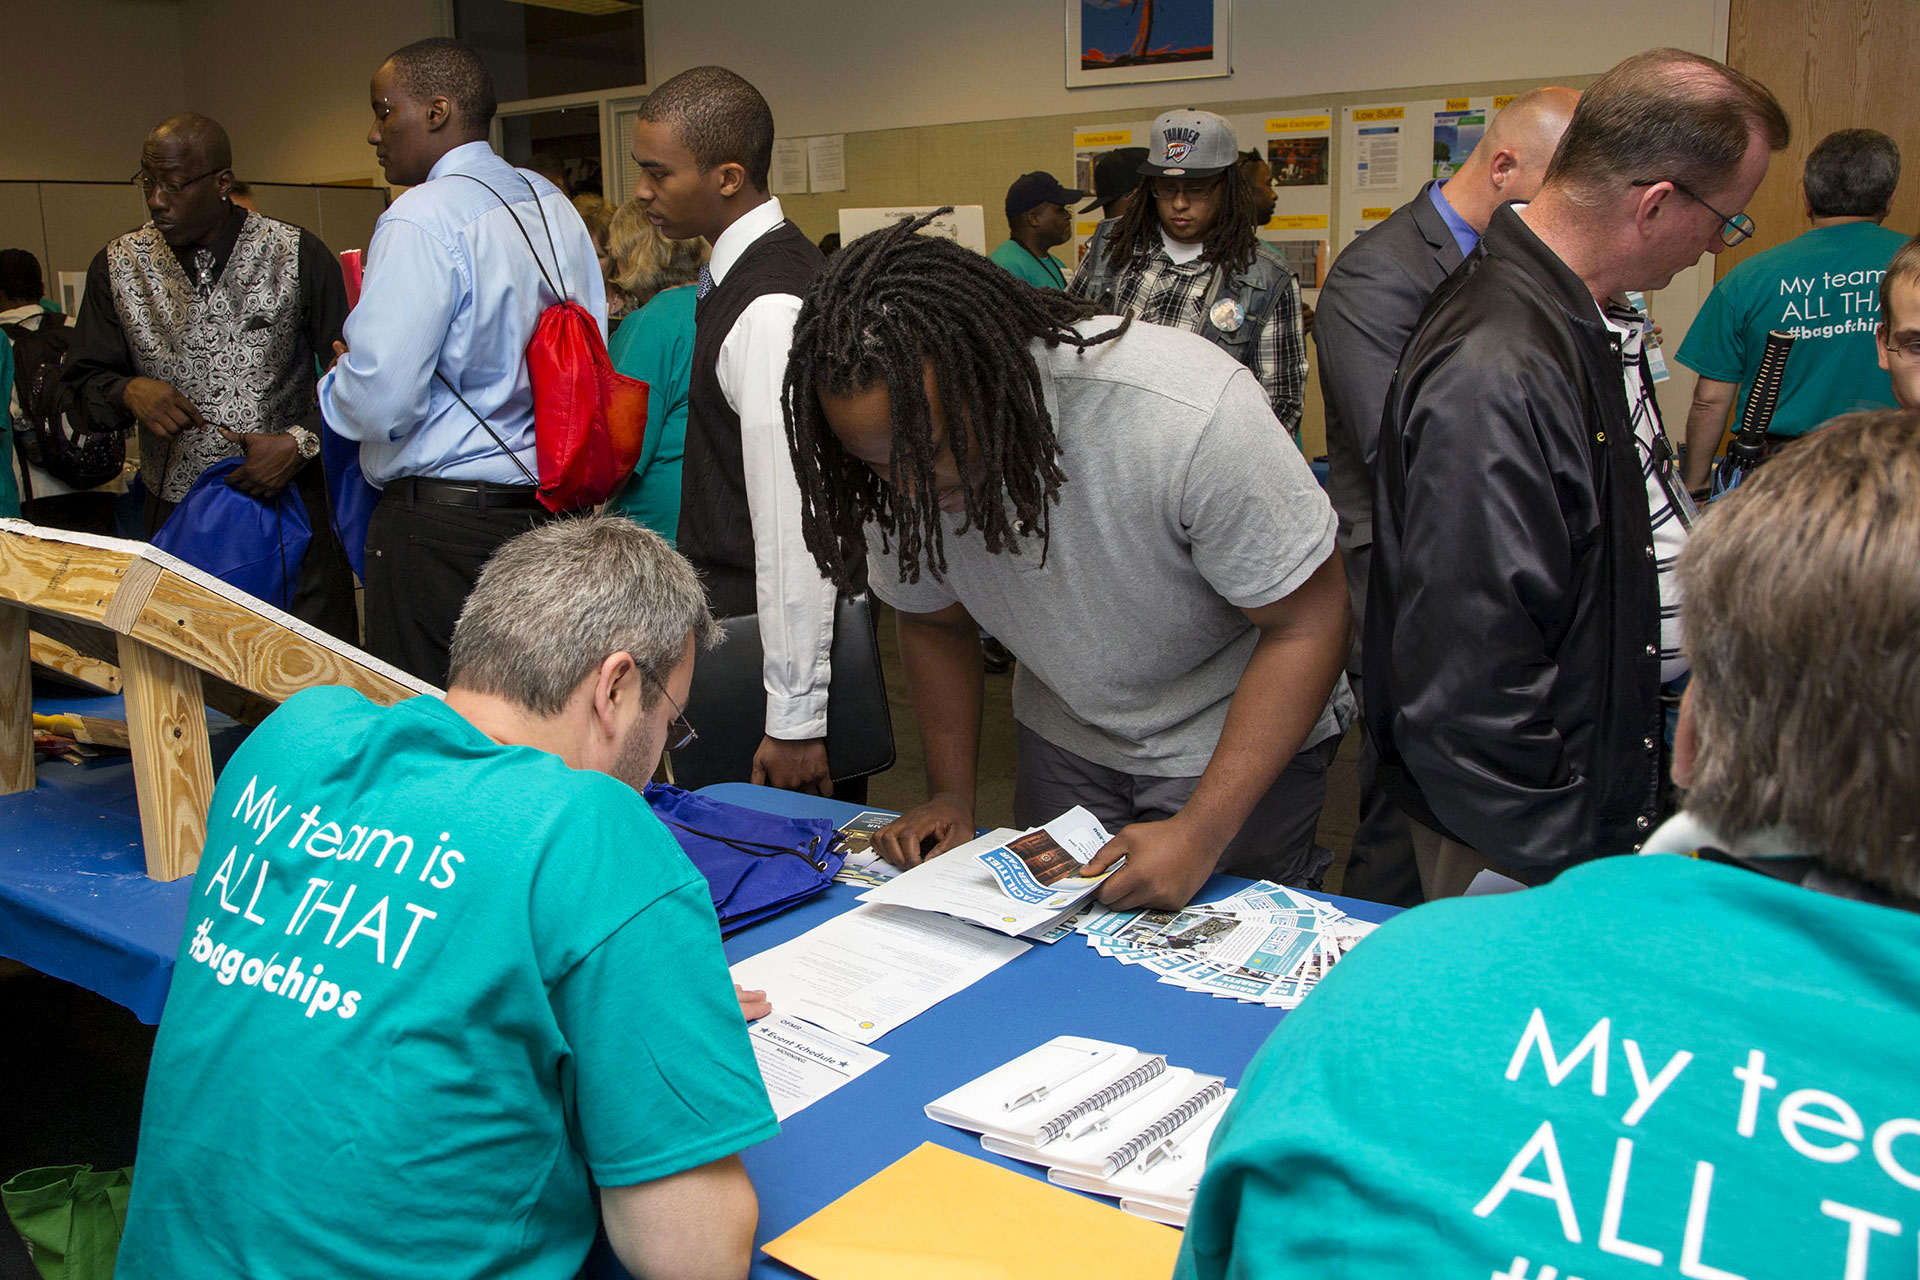 Signing up for OFMR Career Fair 2014